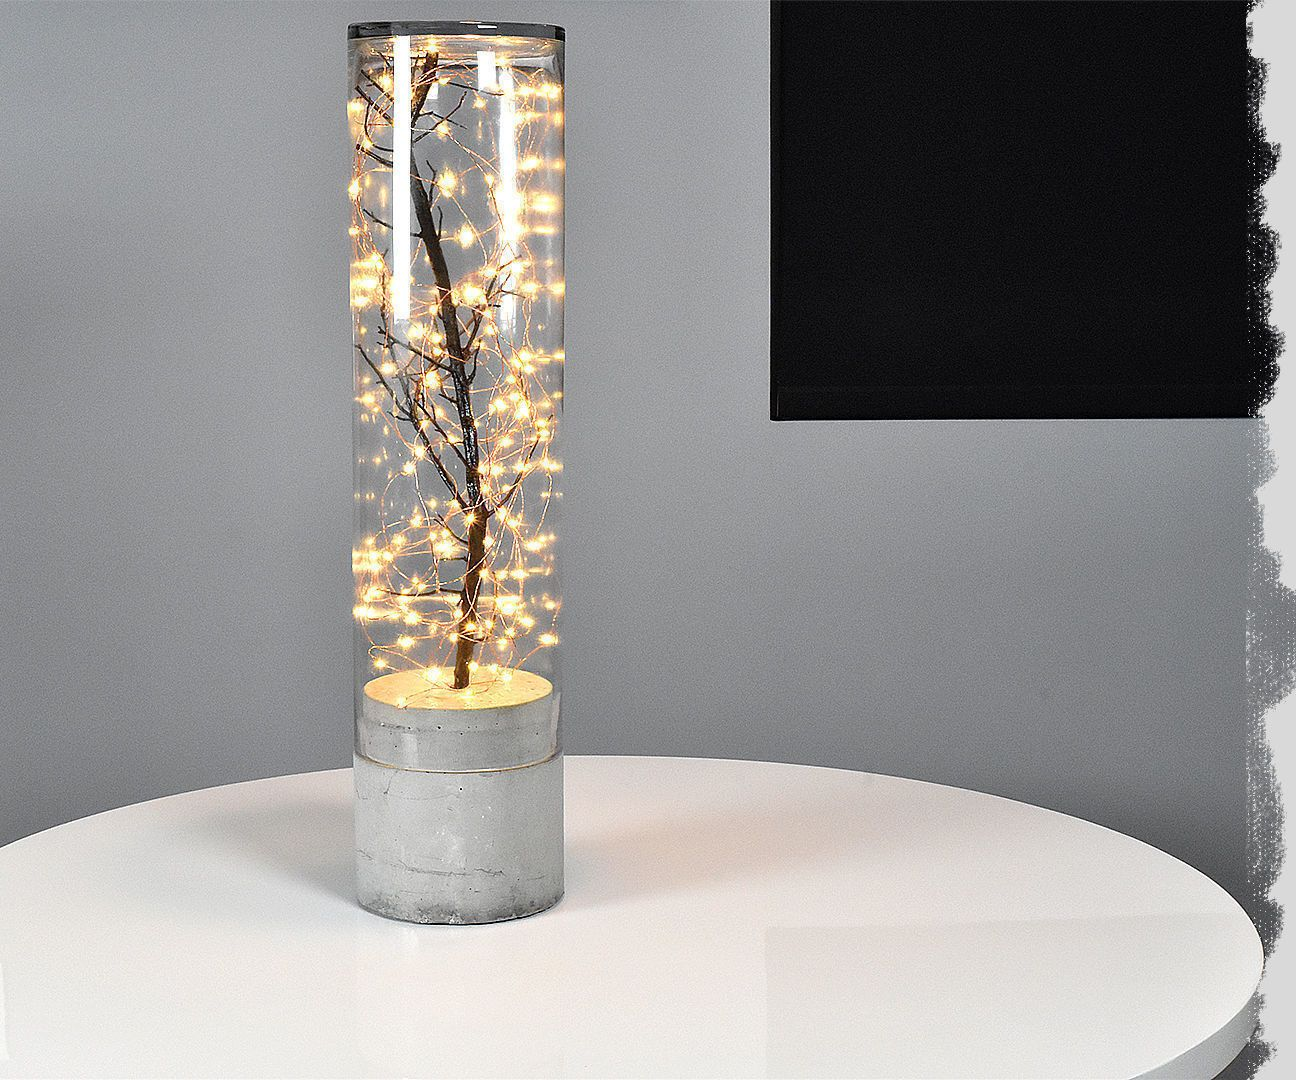 Lamparas De Cemento Diy Indoor Outdoor Concrete Lamp 2 Lighting Pinterest